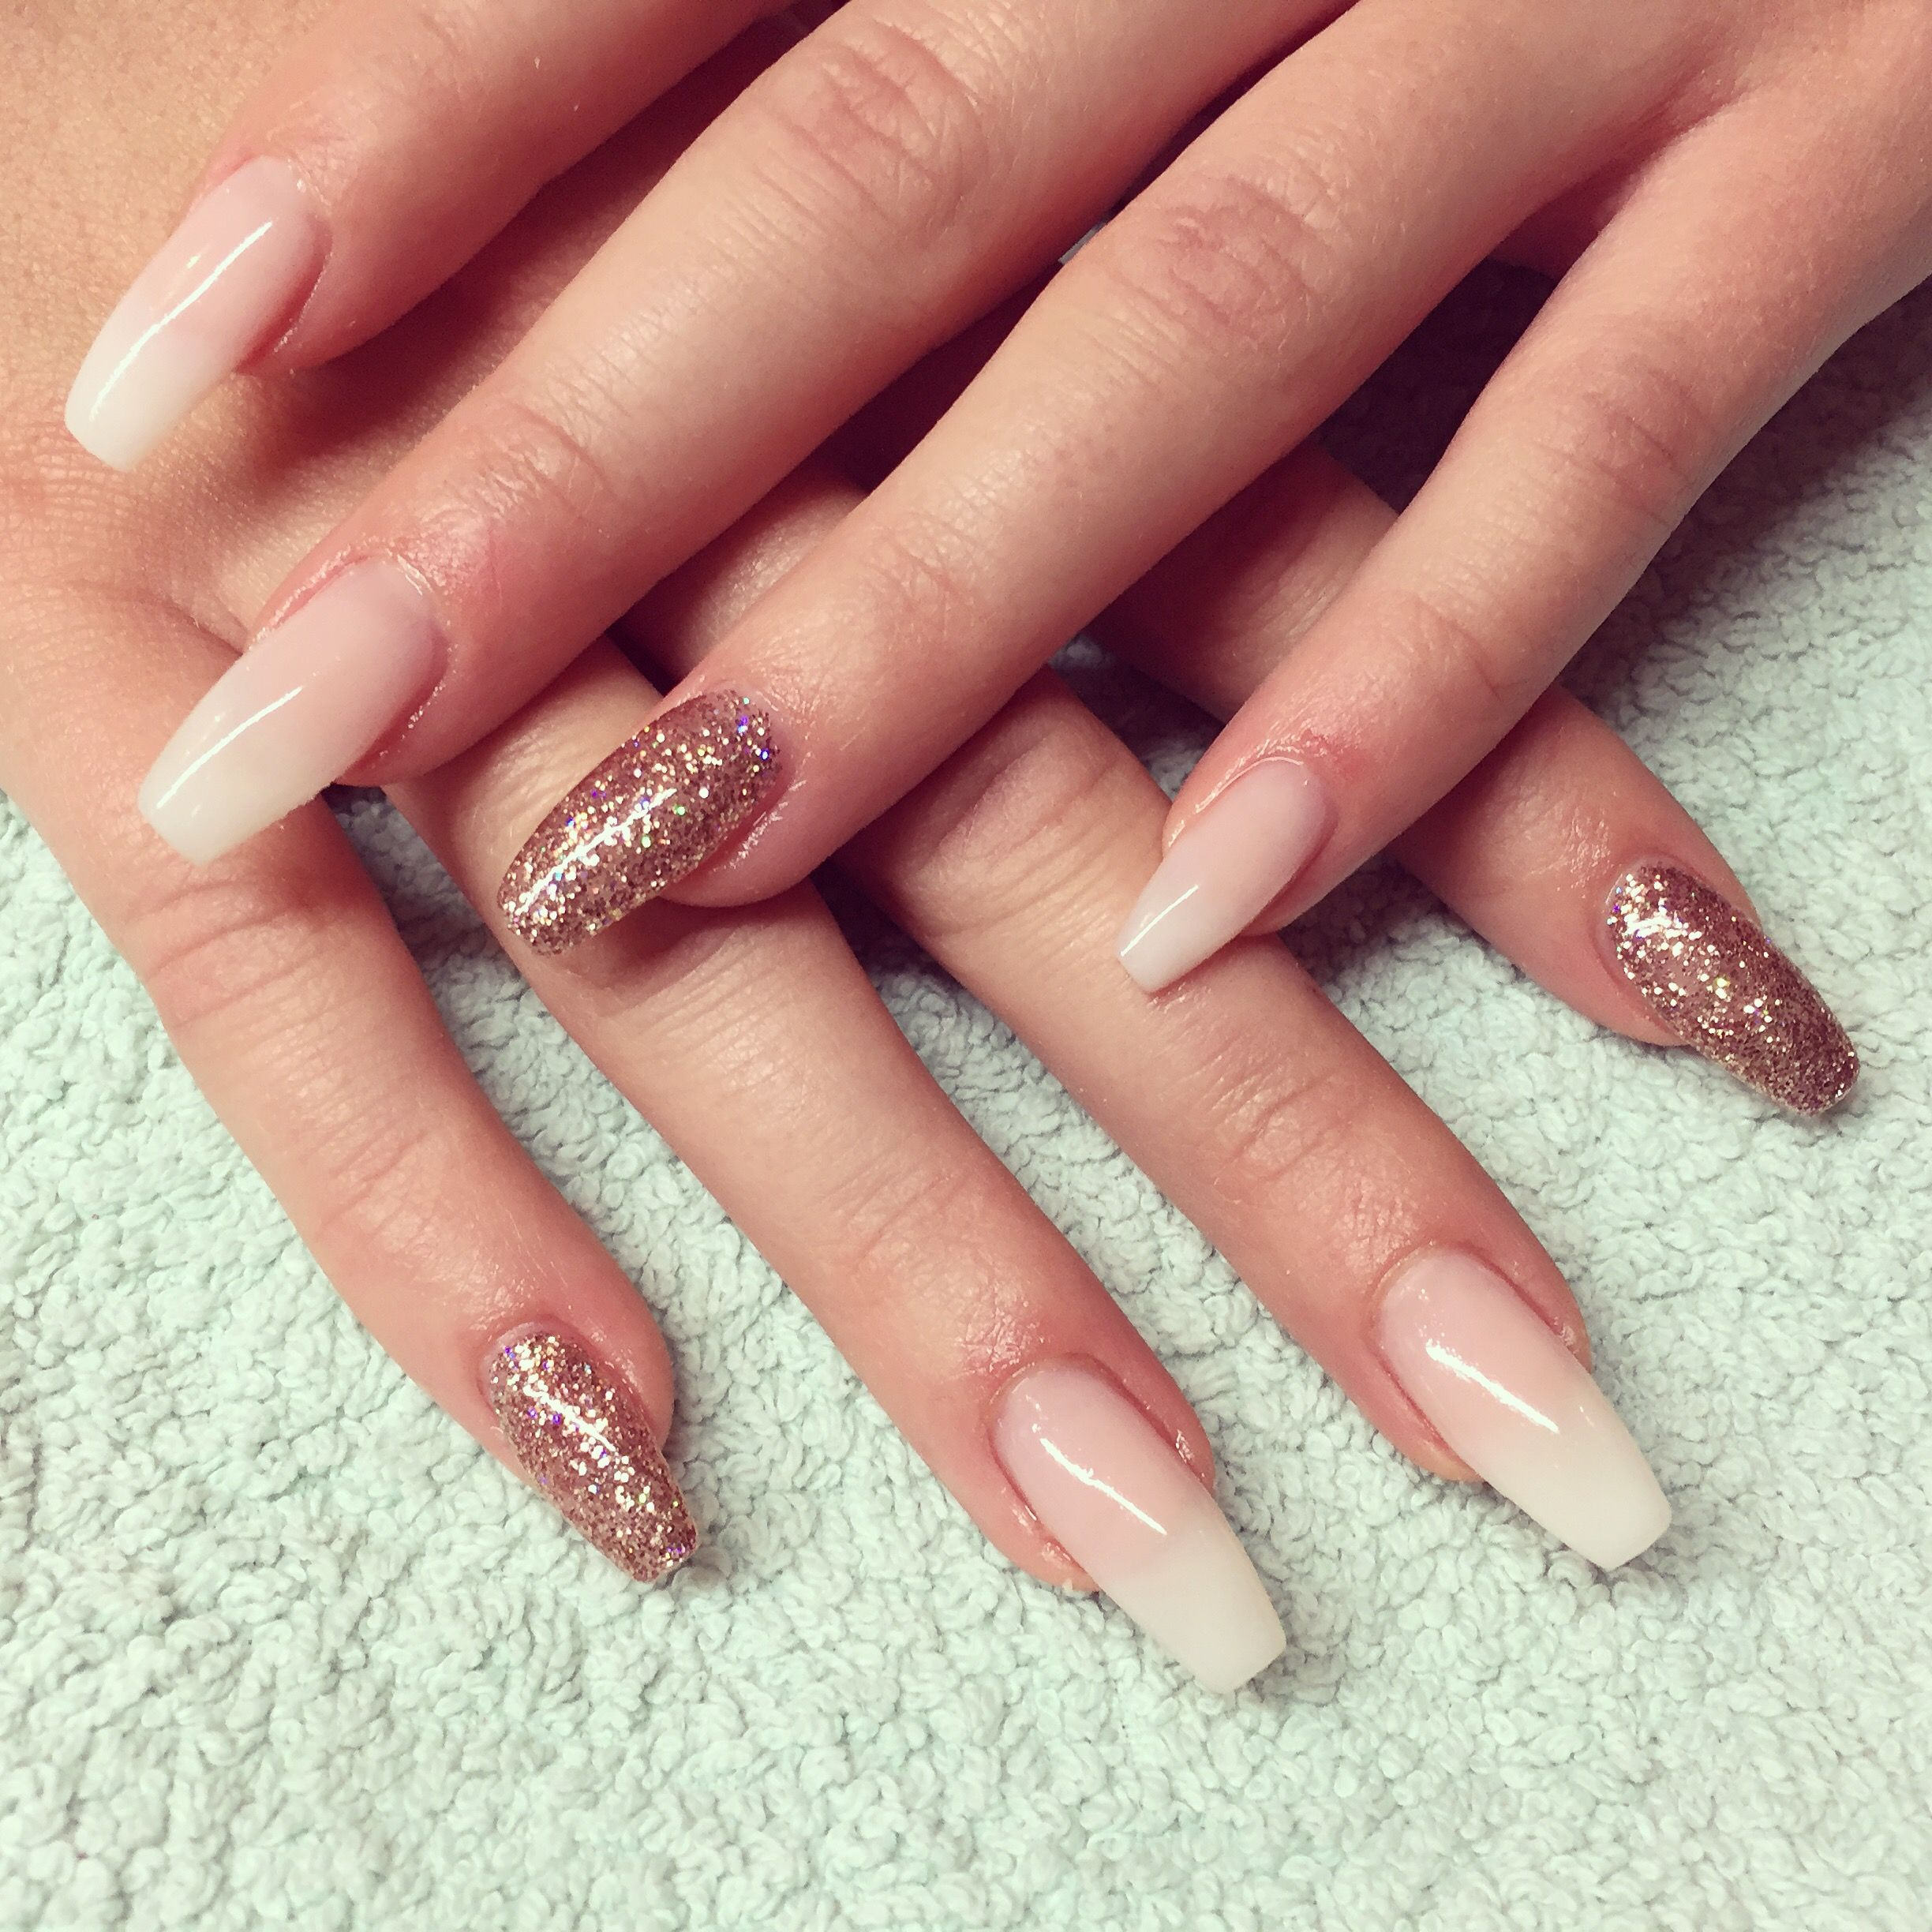 New Nails French with glitter in rosegold #nails #nailart #french ...